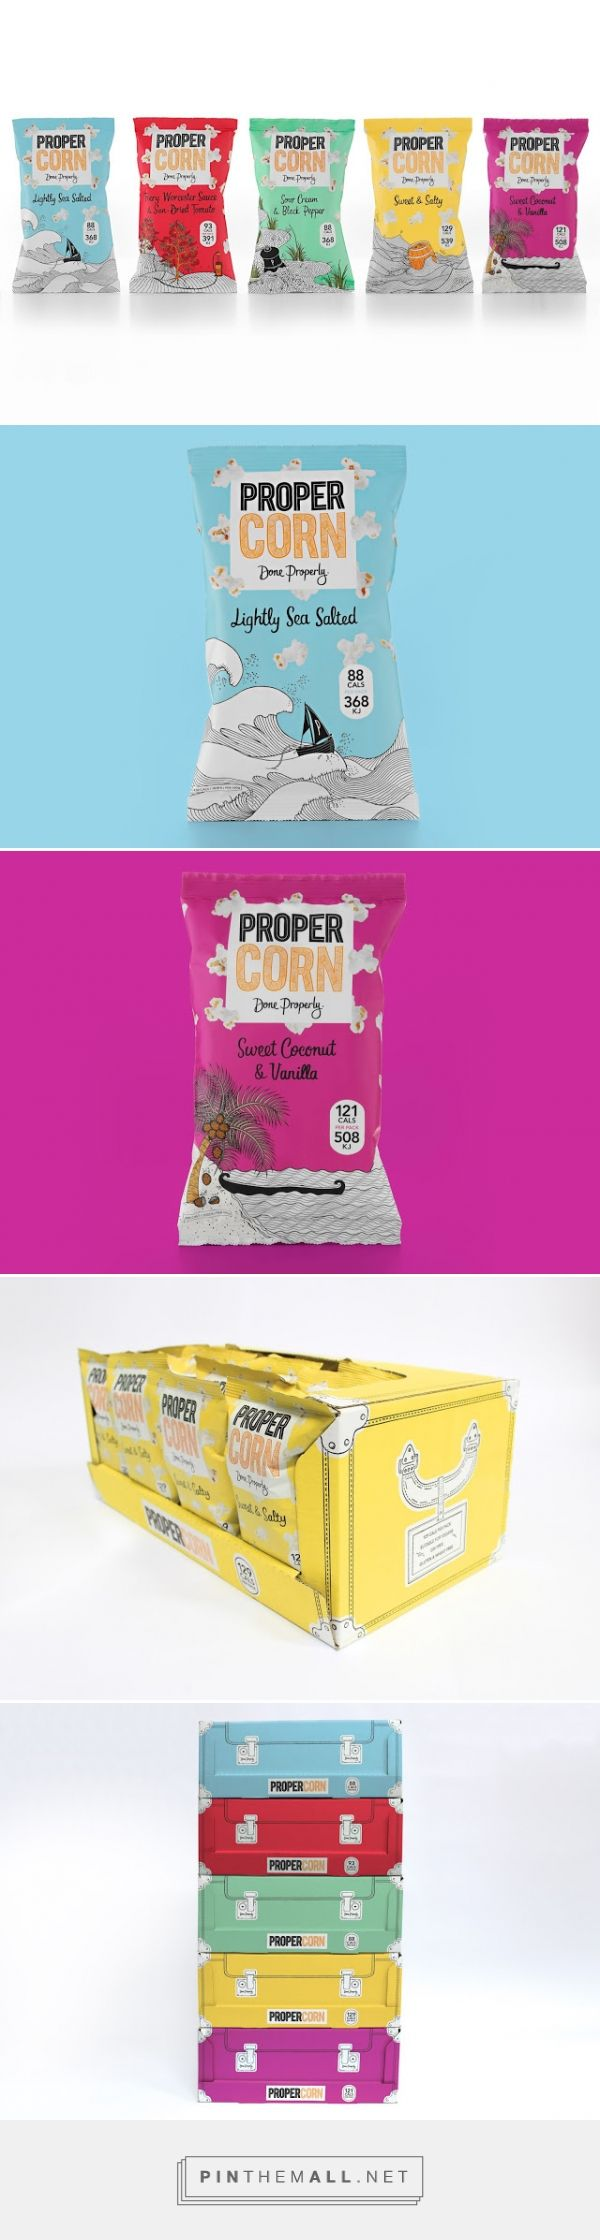 PROPERCORN Brand Evolution